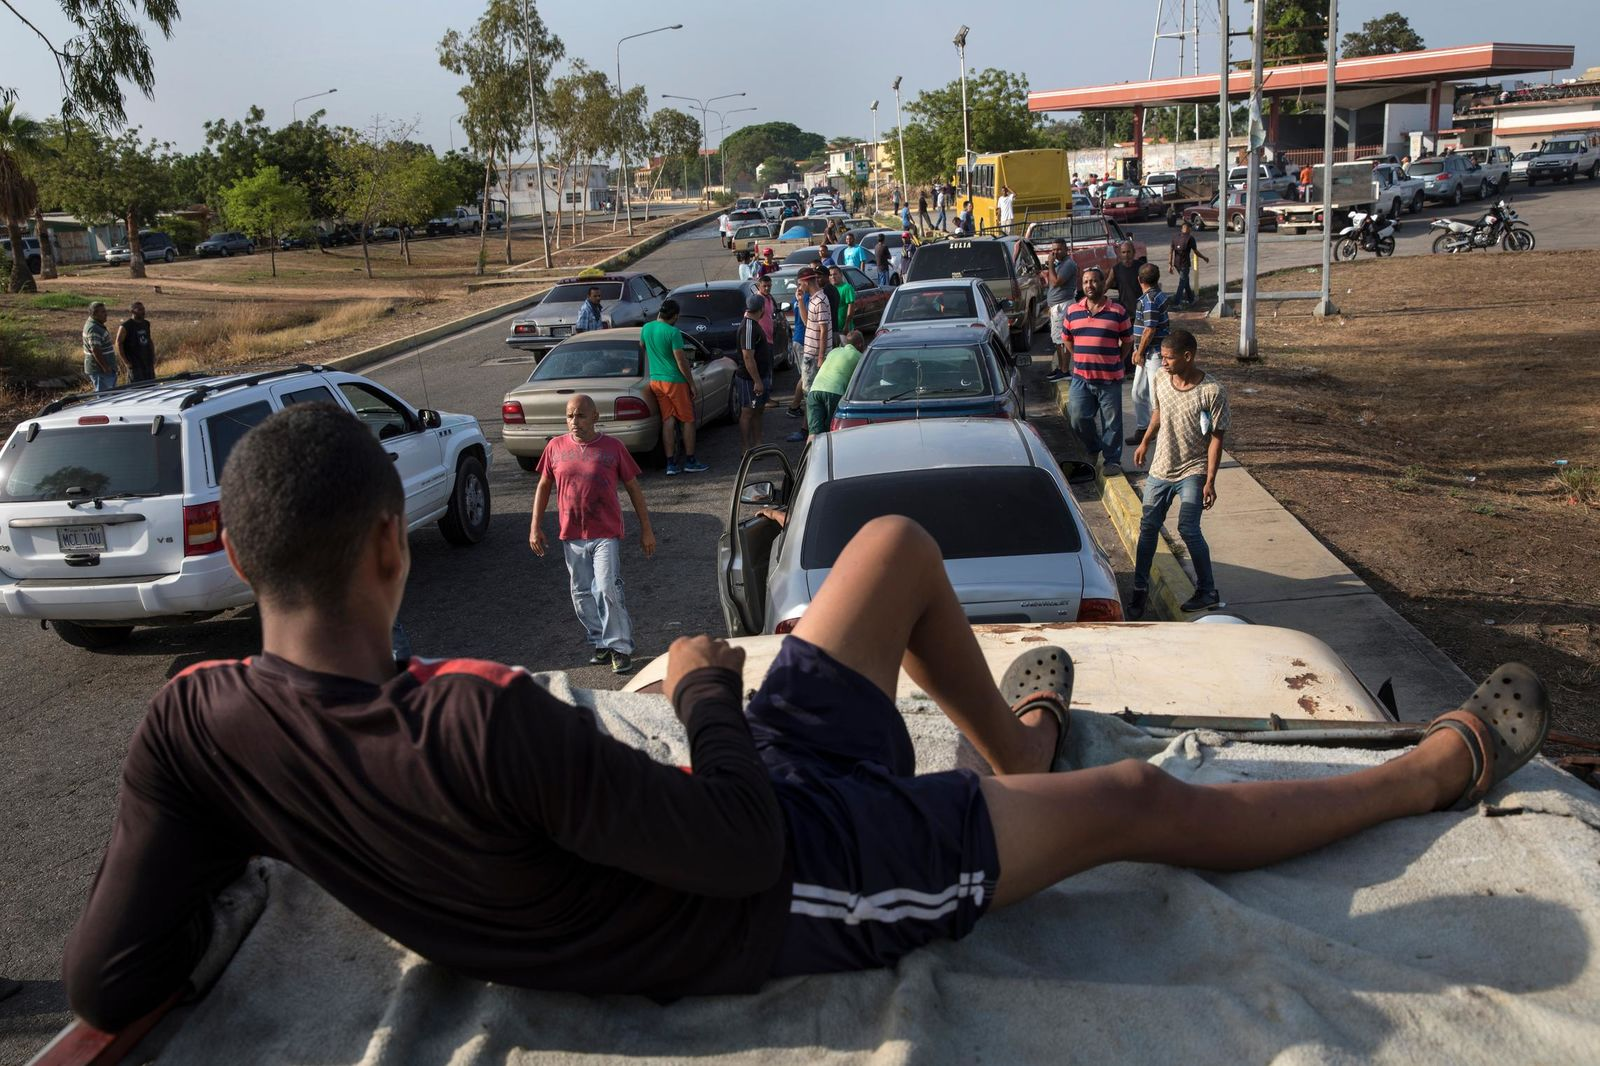 People line the street with their vehicles as they wait to fill up with gas at a fuel station, top right, in Cabimas, Venezuela, Wednesday, May 15, 2019. . (AP Photo/Rodrigo Abd)